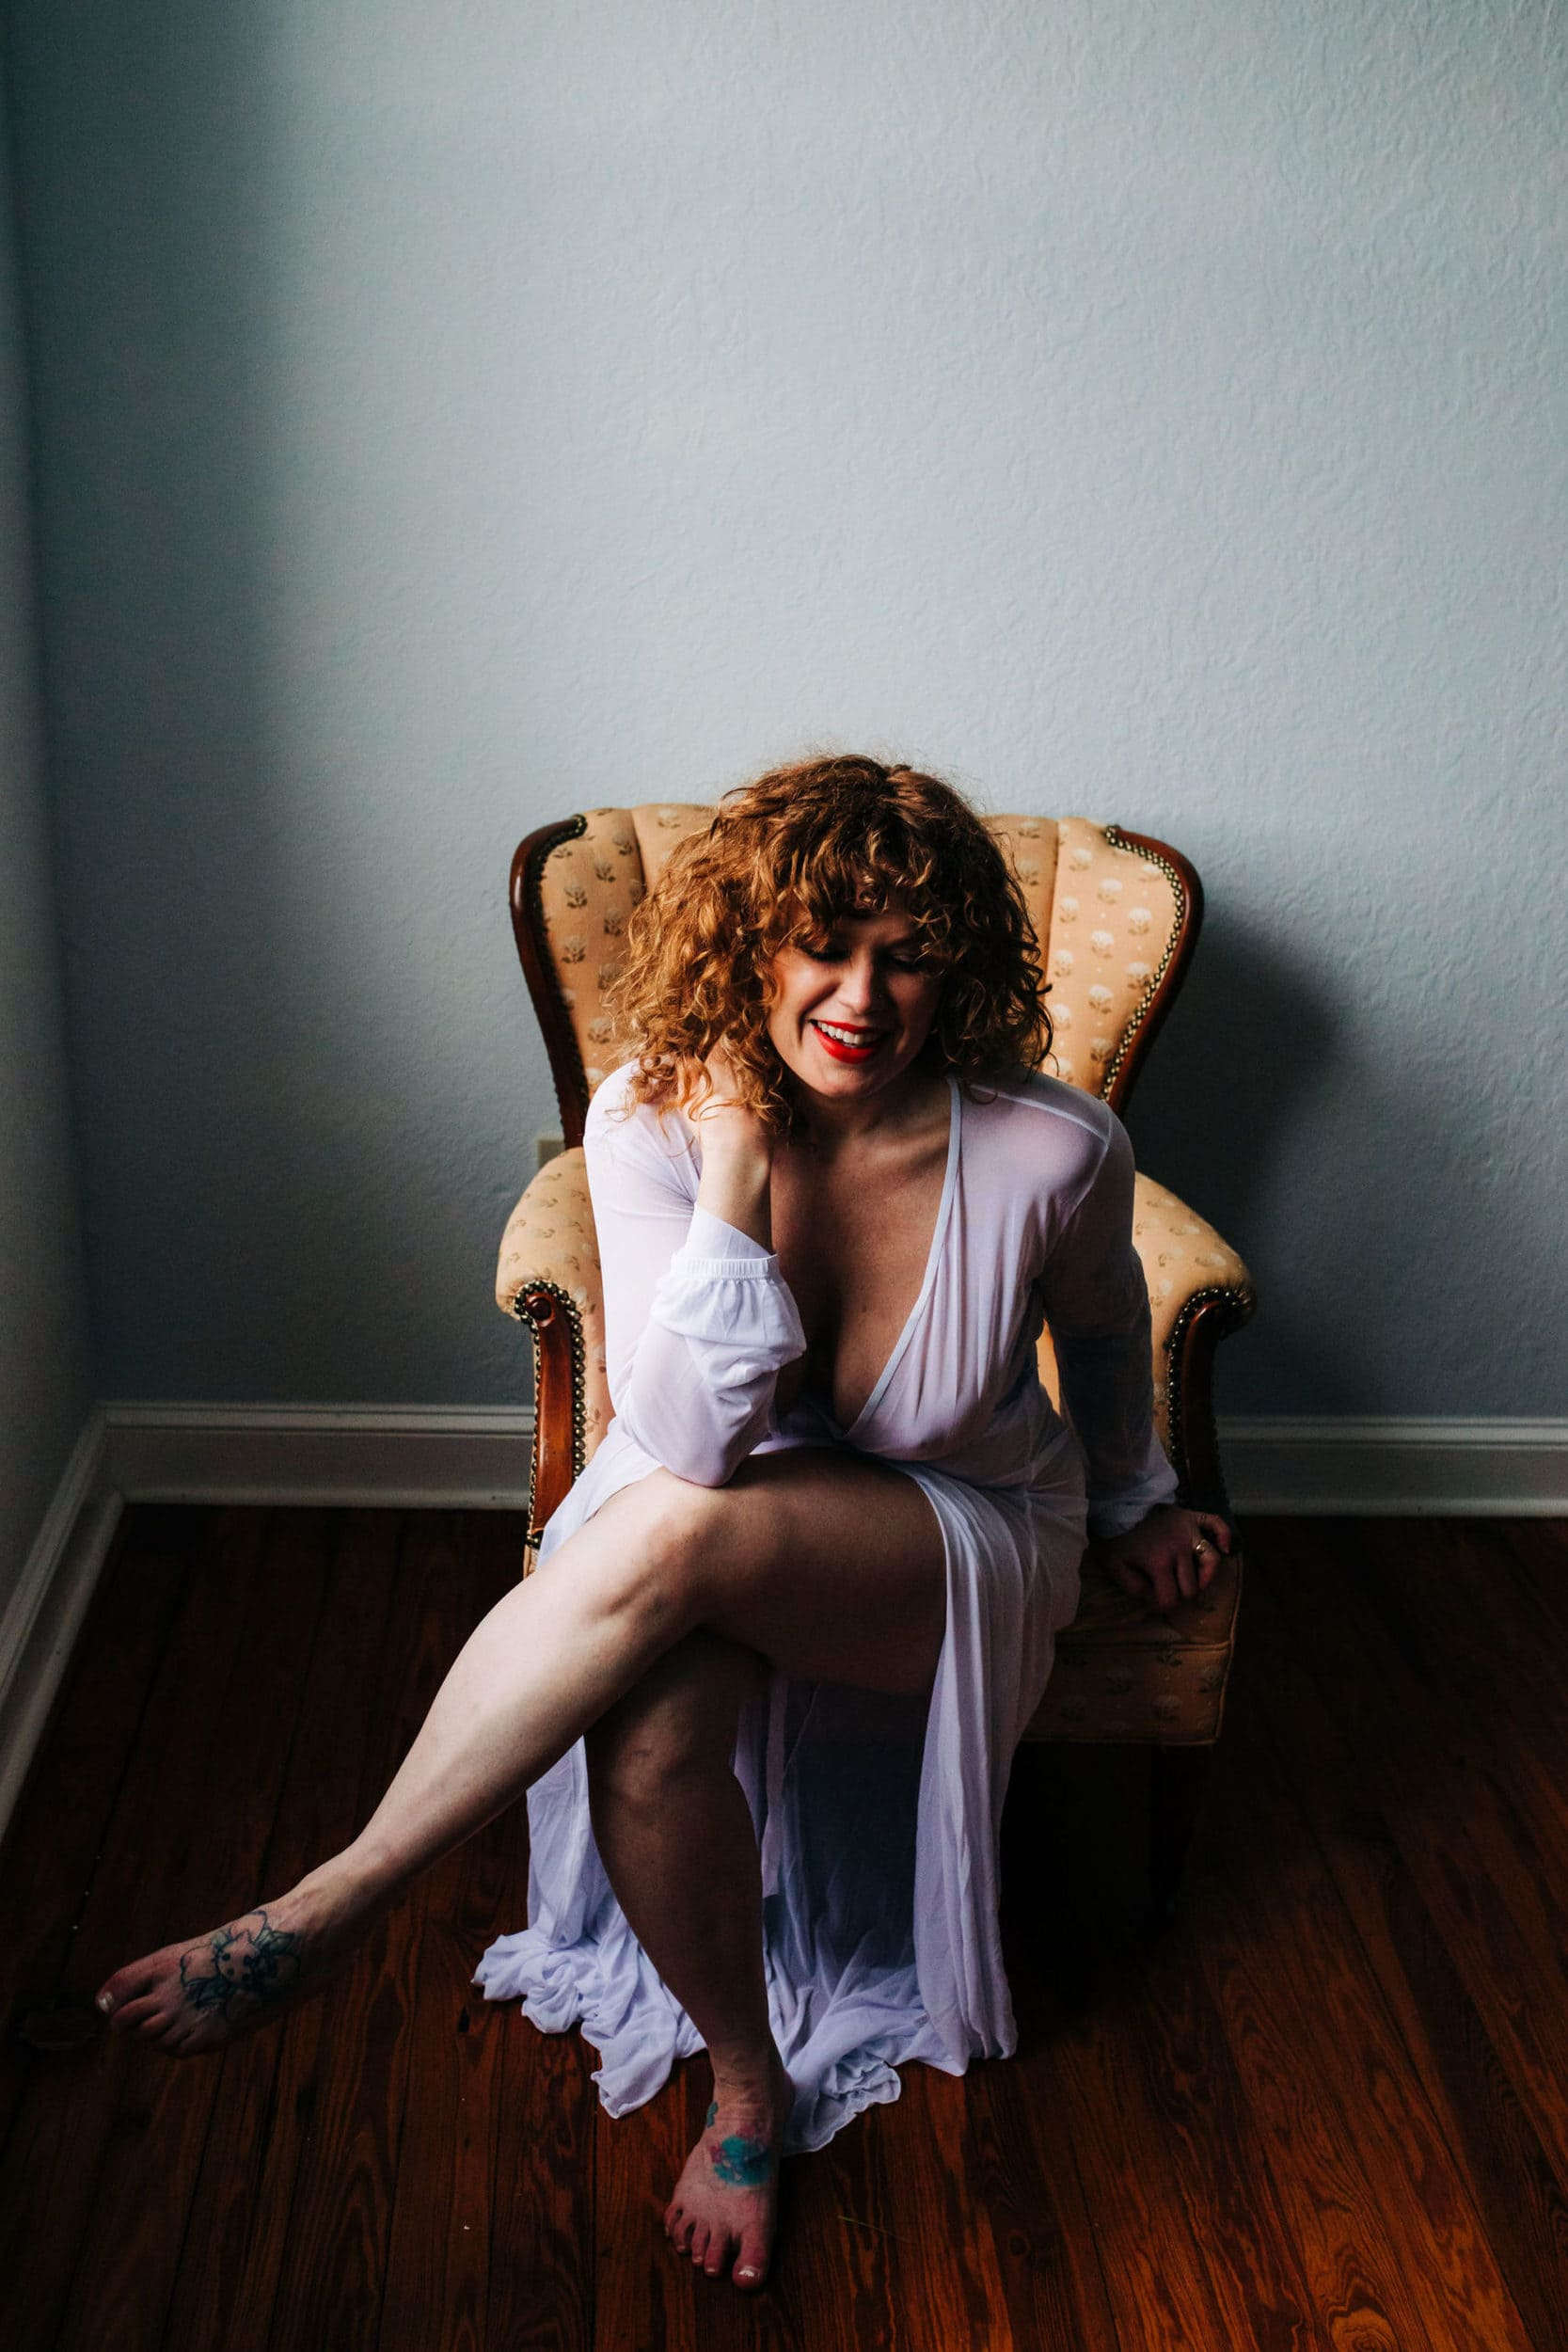 redheaded girl in white robe sitting in yellow chair